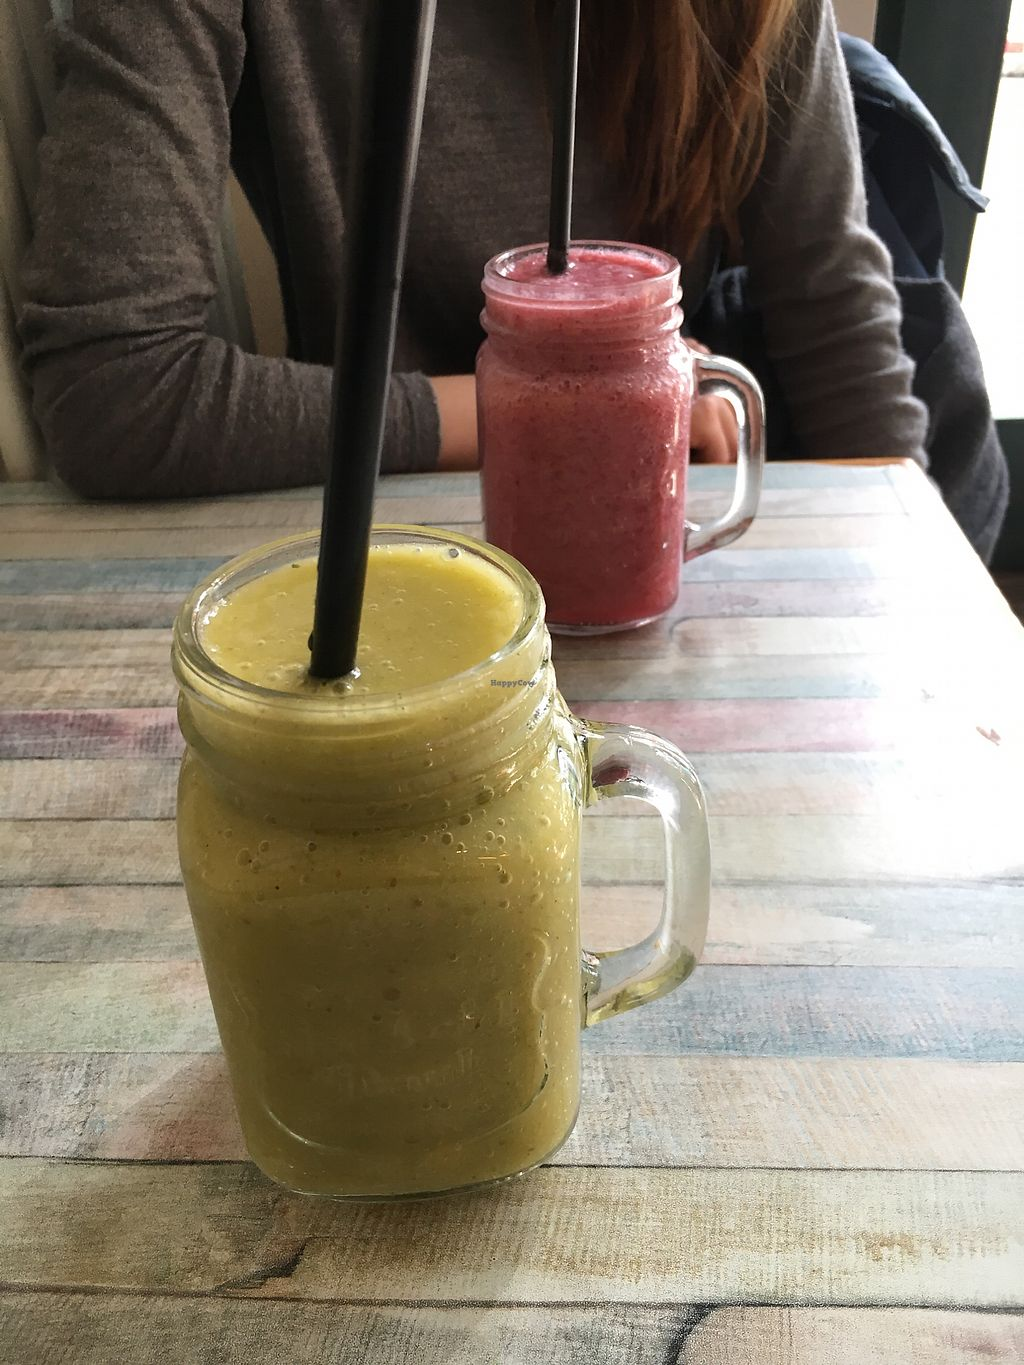 """Photo of Geh Veg  by <a href=""""/members/profile/JouniK%C3%A4rpp%C3%A4"""">JouniKärppä</a> <br/>Smoothies <br/> February 25, 2018  - <a href='/contact/abuse/image/54502/363718'>Report</a>"""